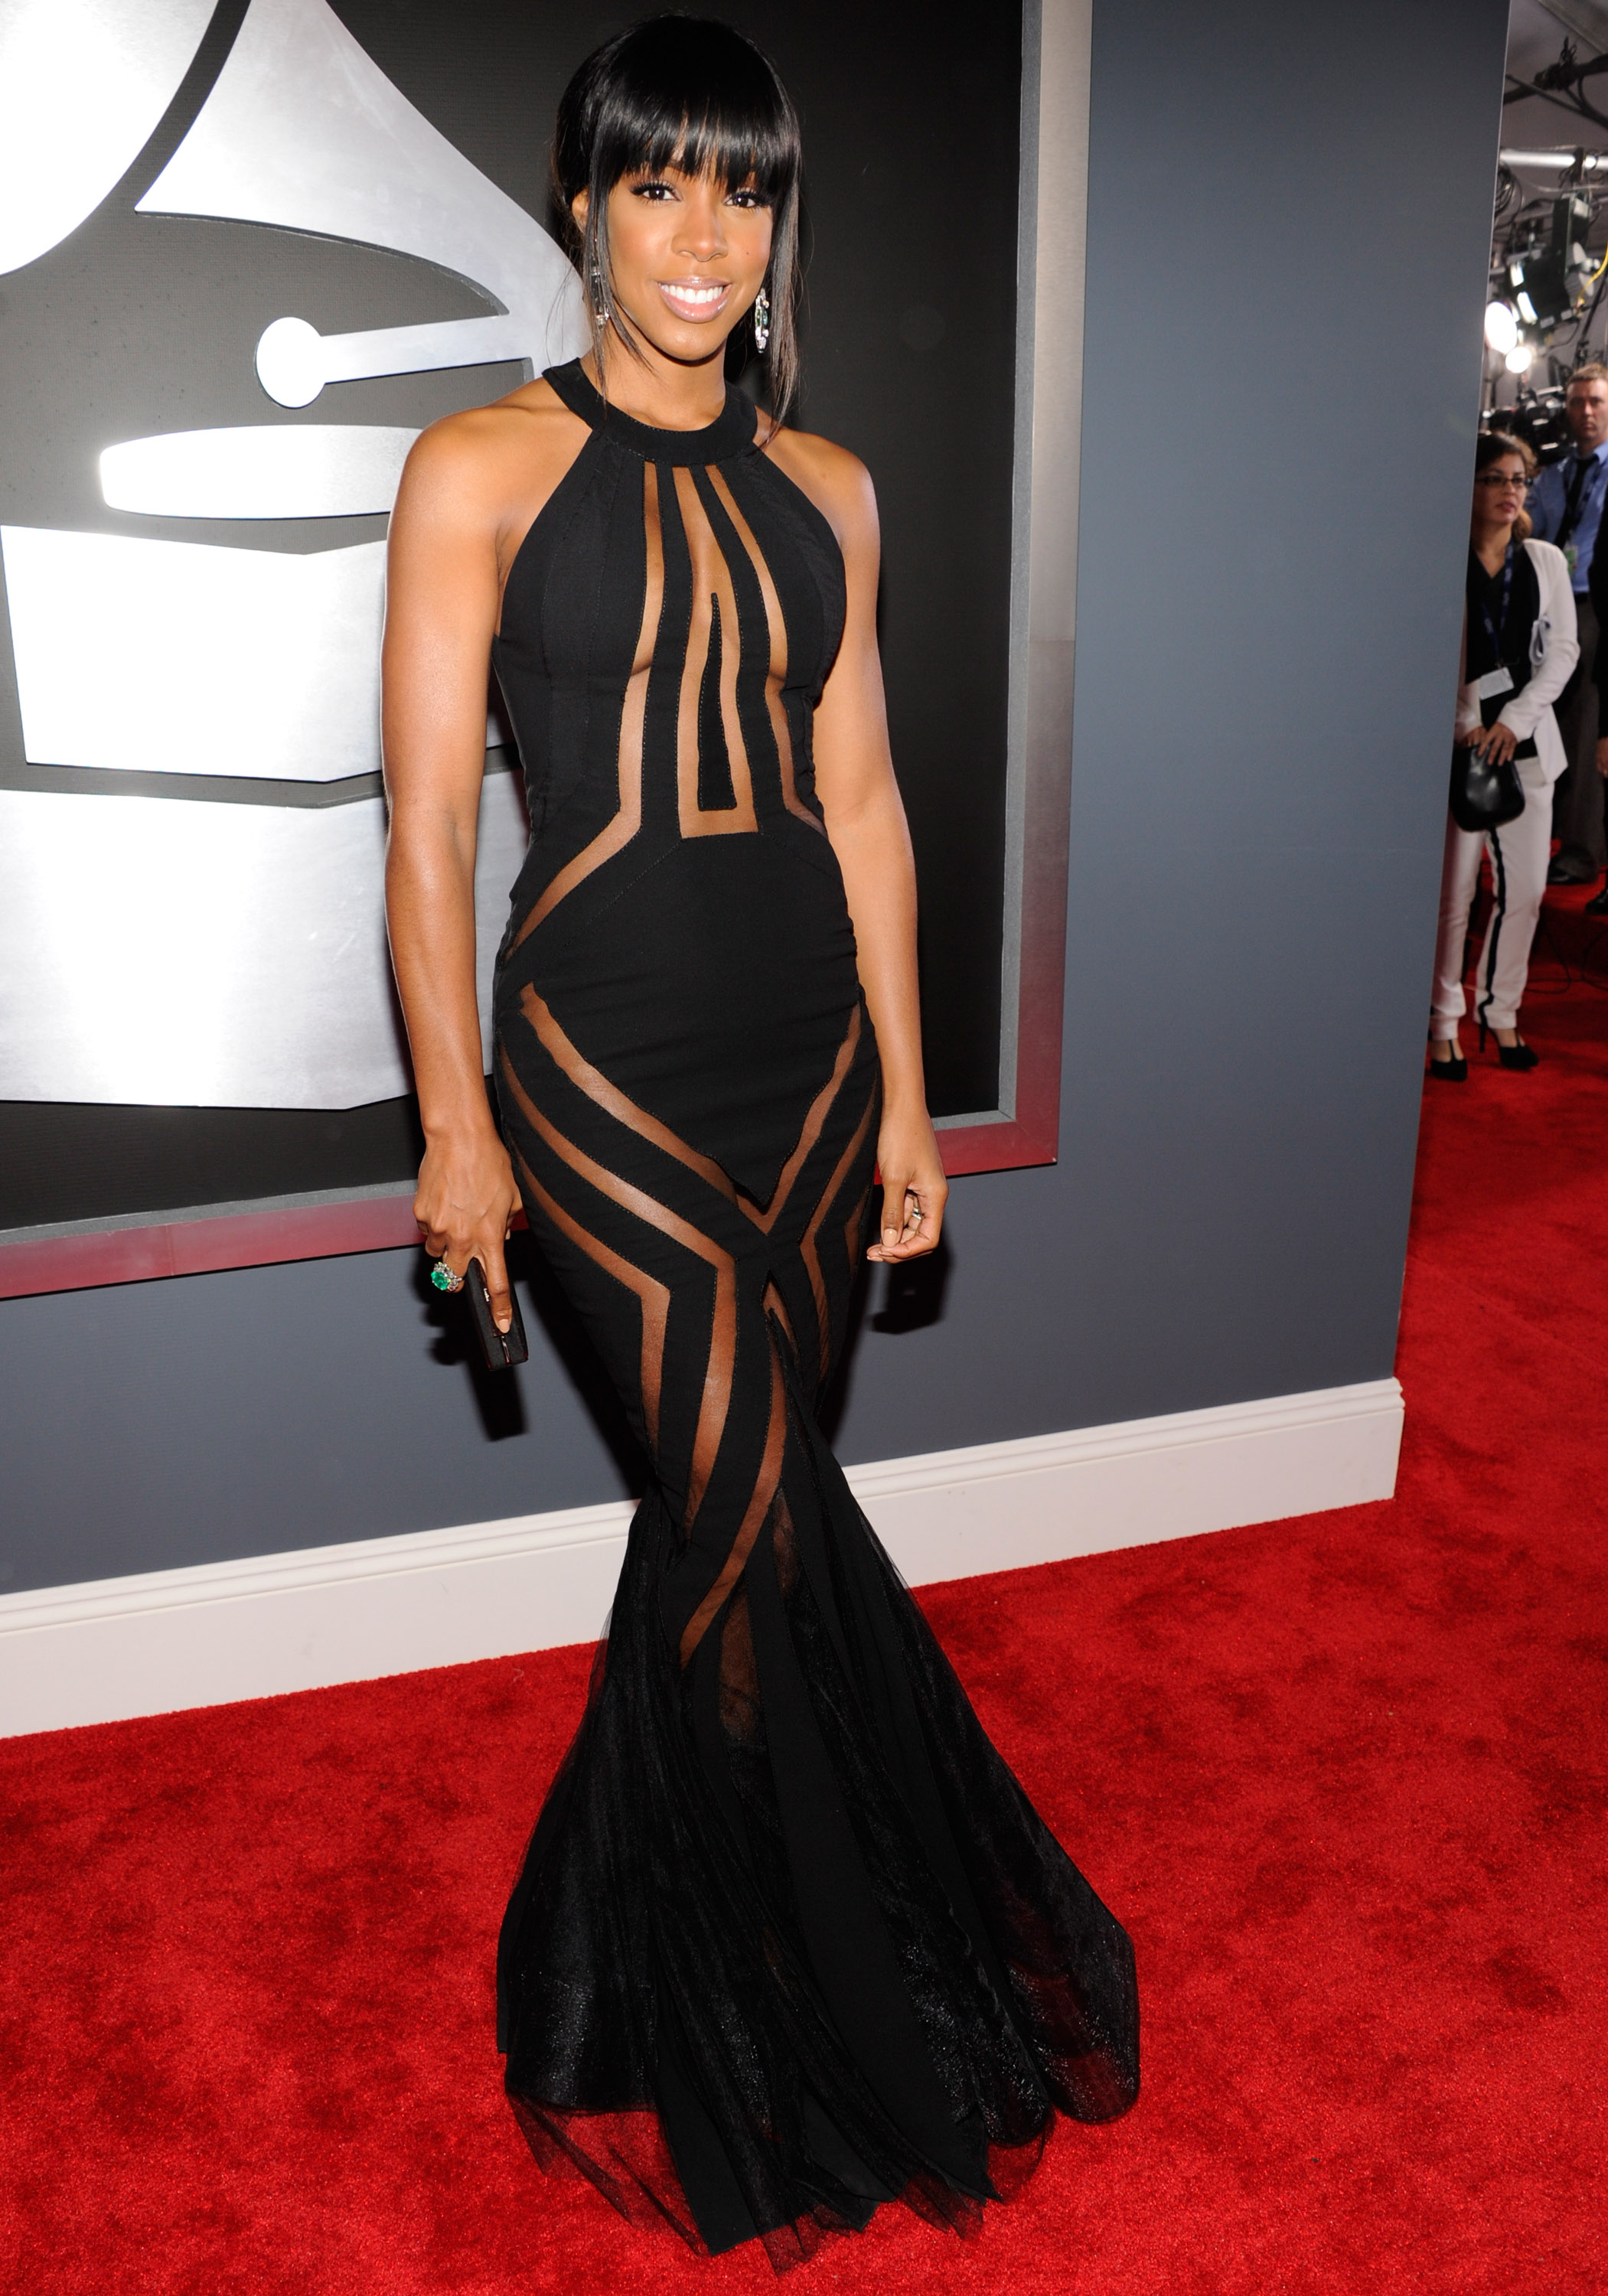 Kelly Rowland wore a sheer black dress on the Grammys red carpet.